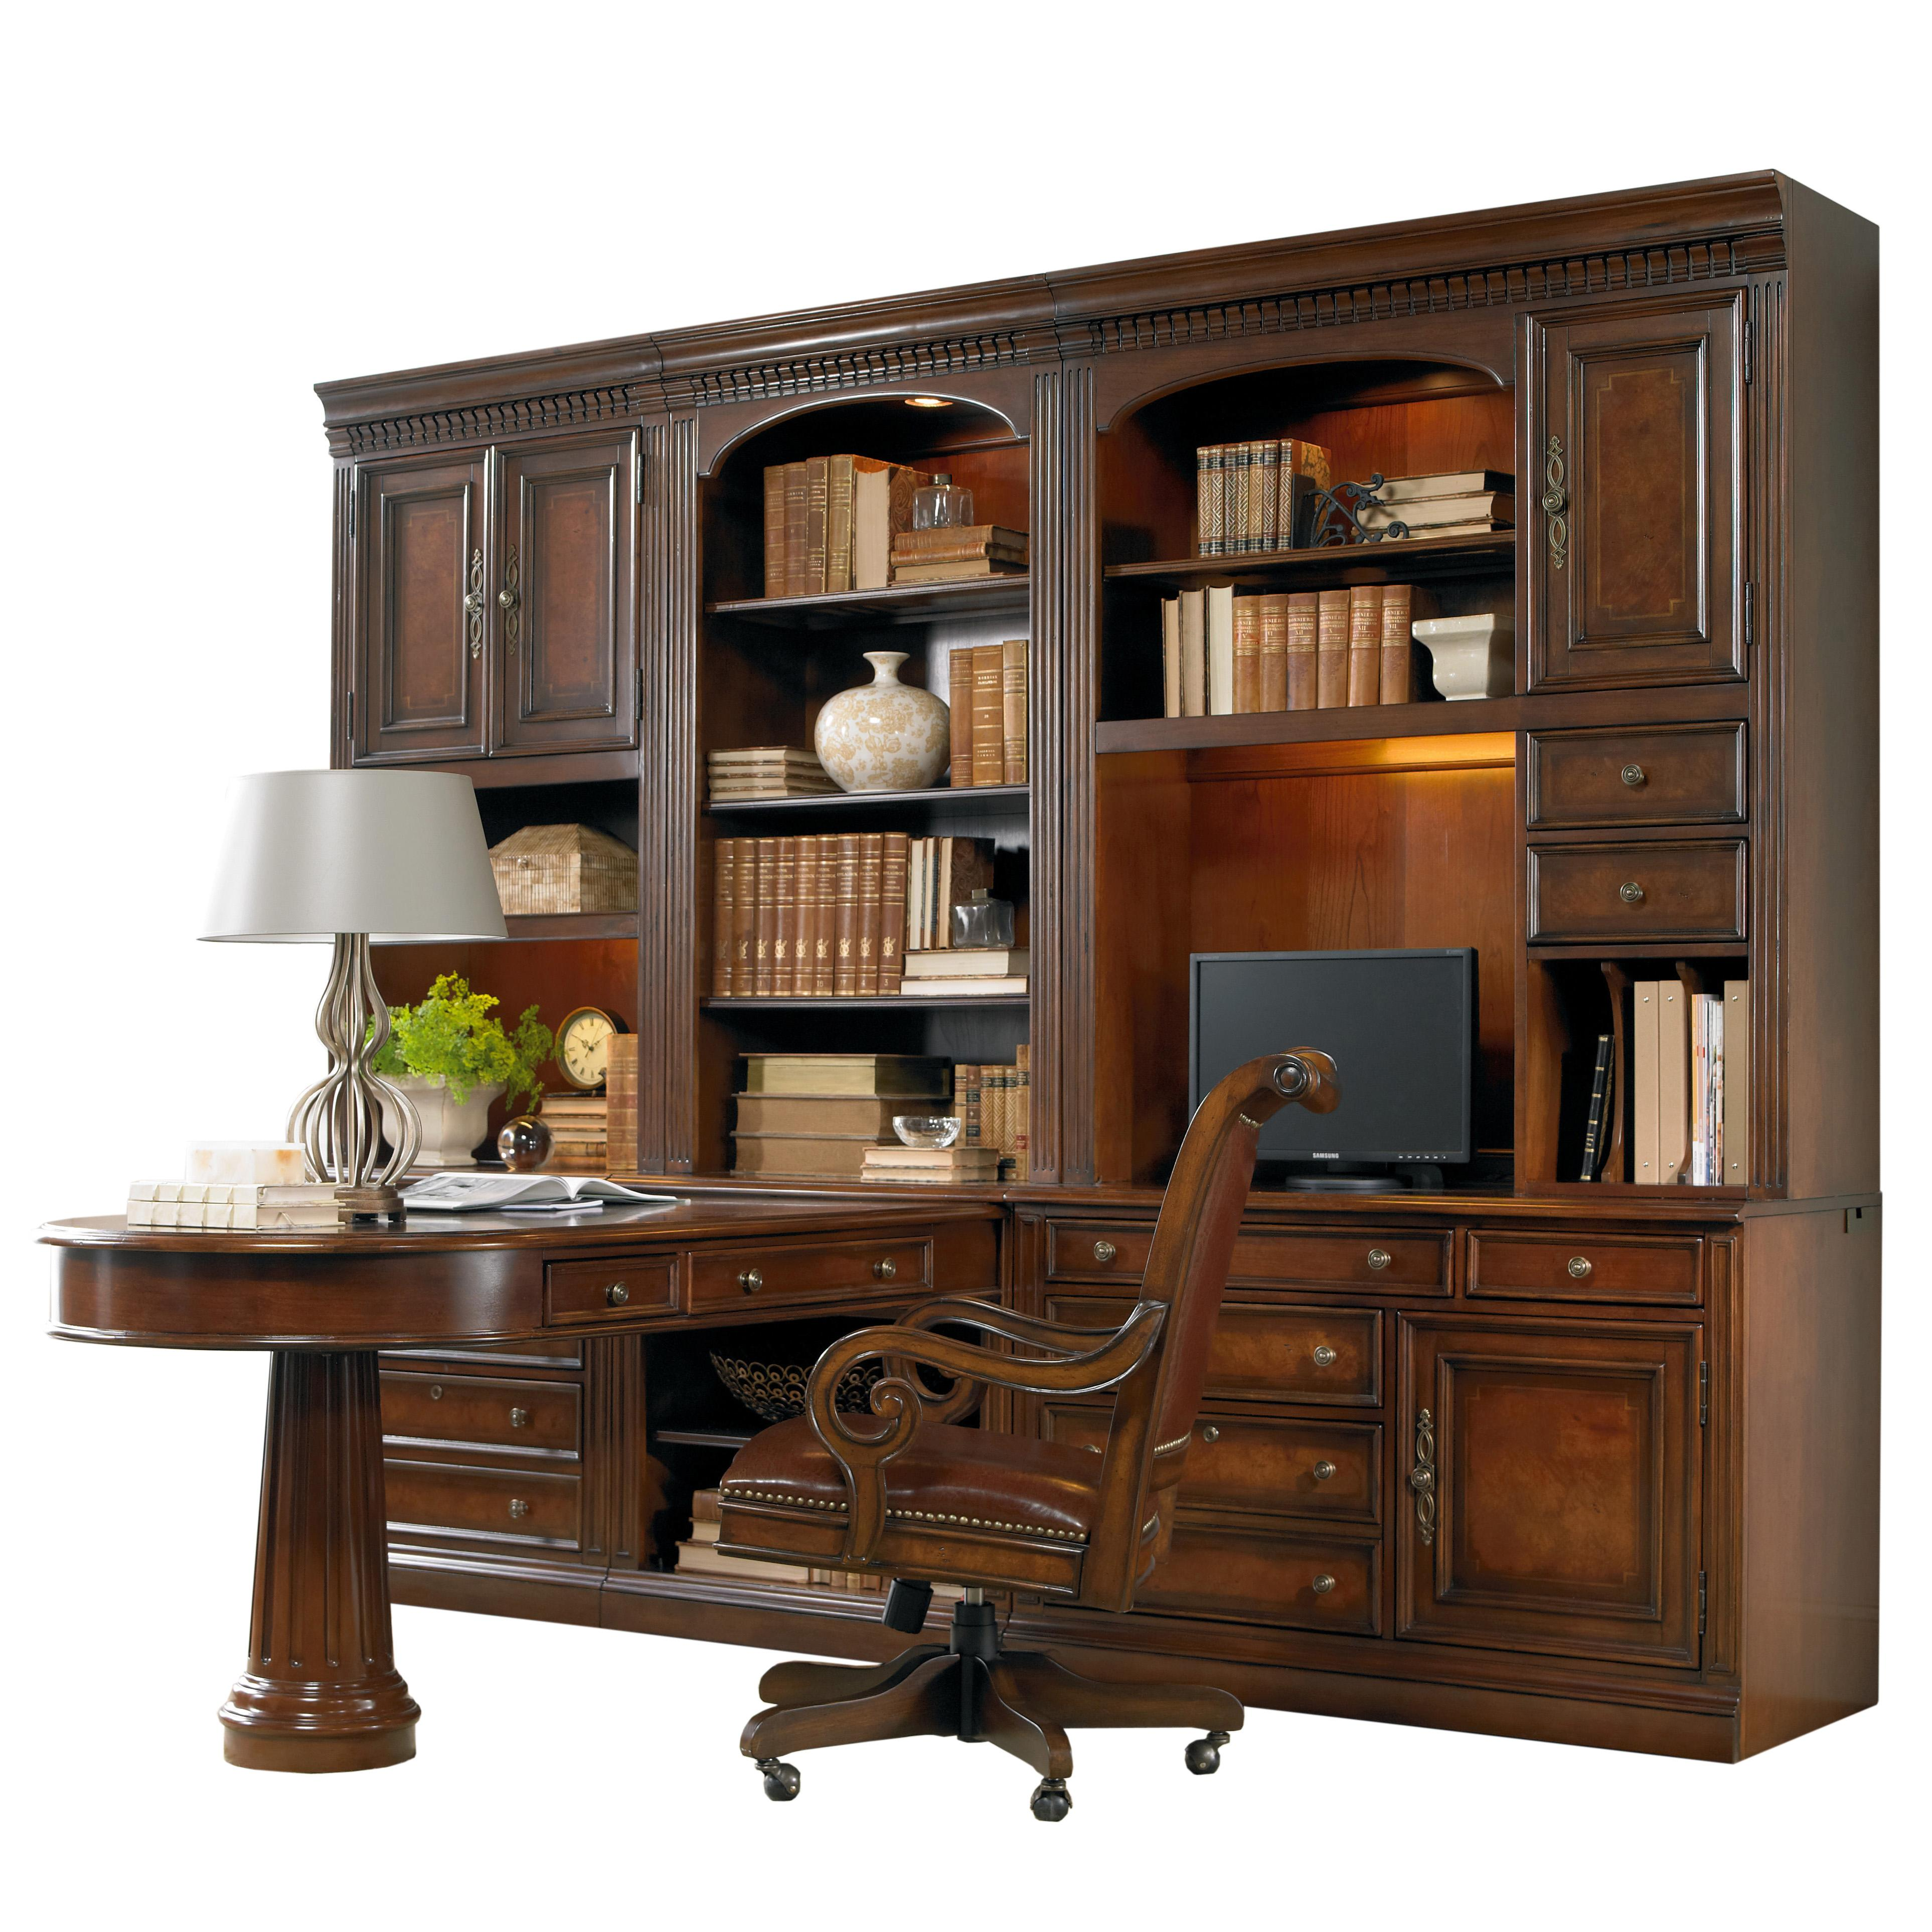 Groovy European Renaissance Ii Office Wall Unit With Peninsula Desk Home Interior And Landscaping Spoatsignezvosmurscom